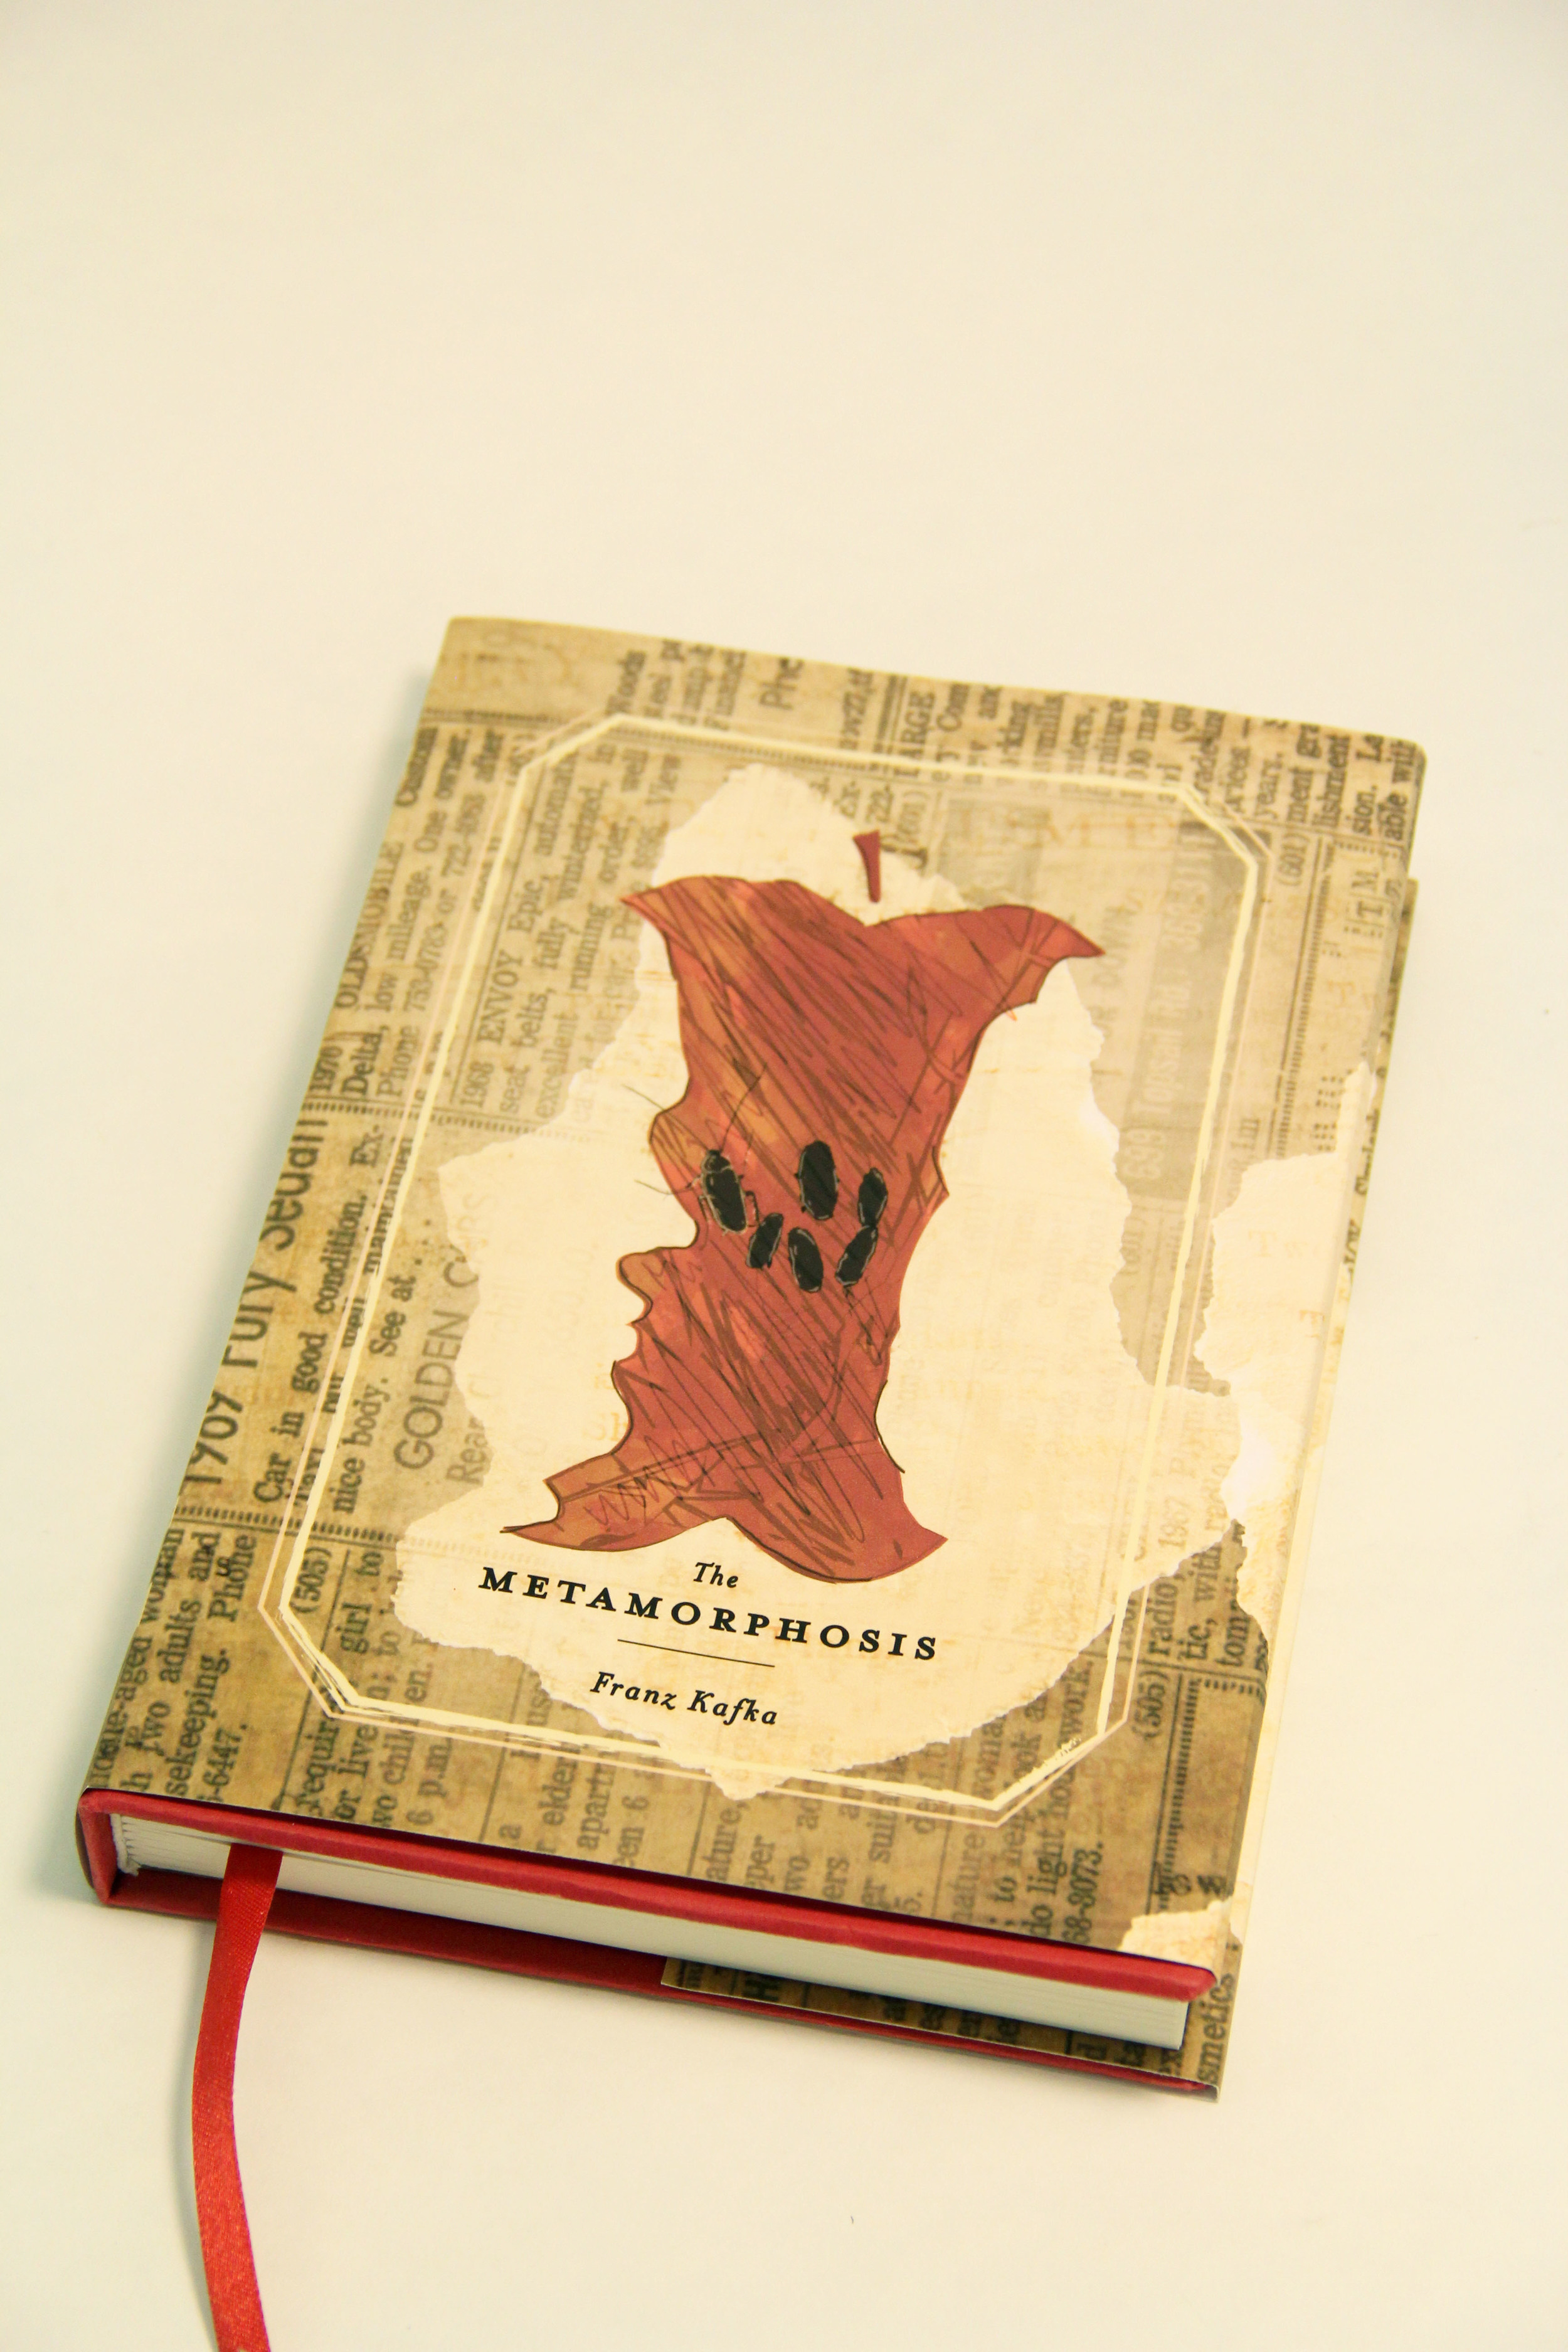 The Metamorphosis book front cover